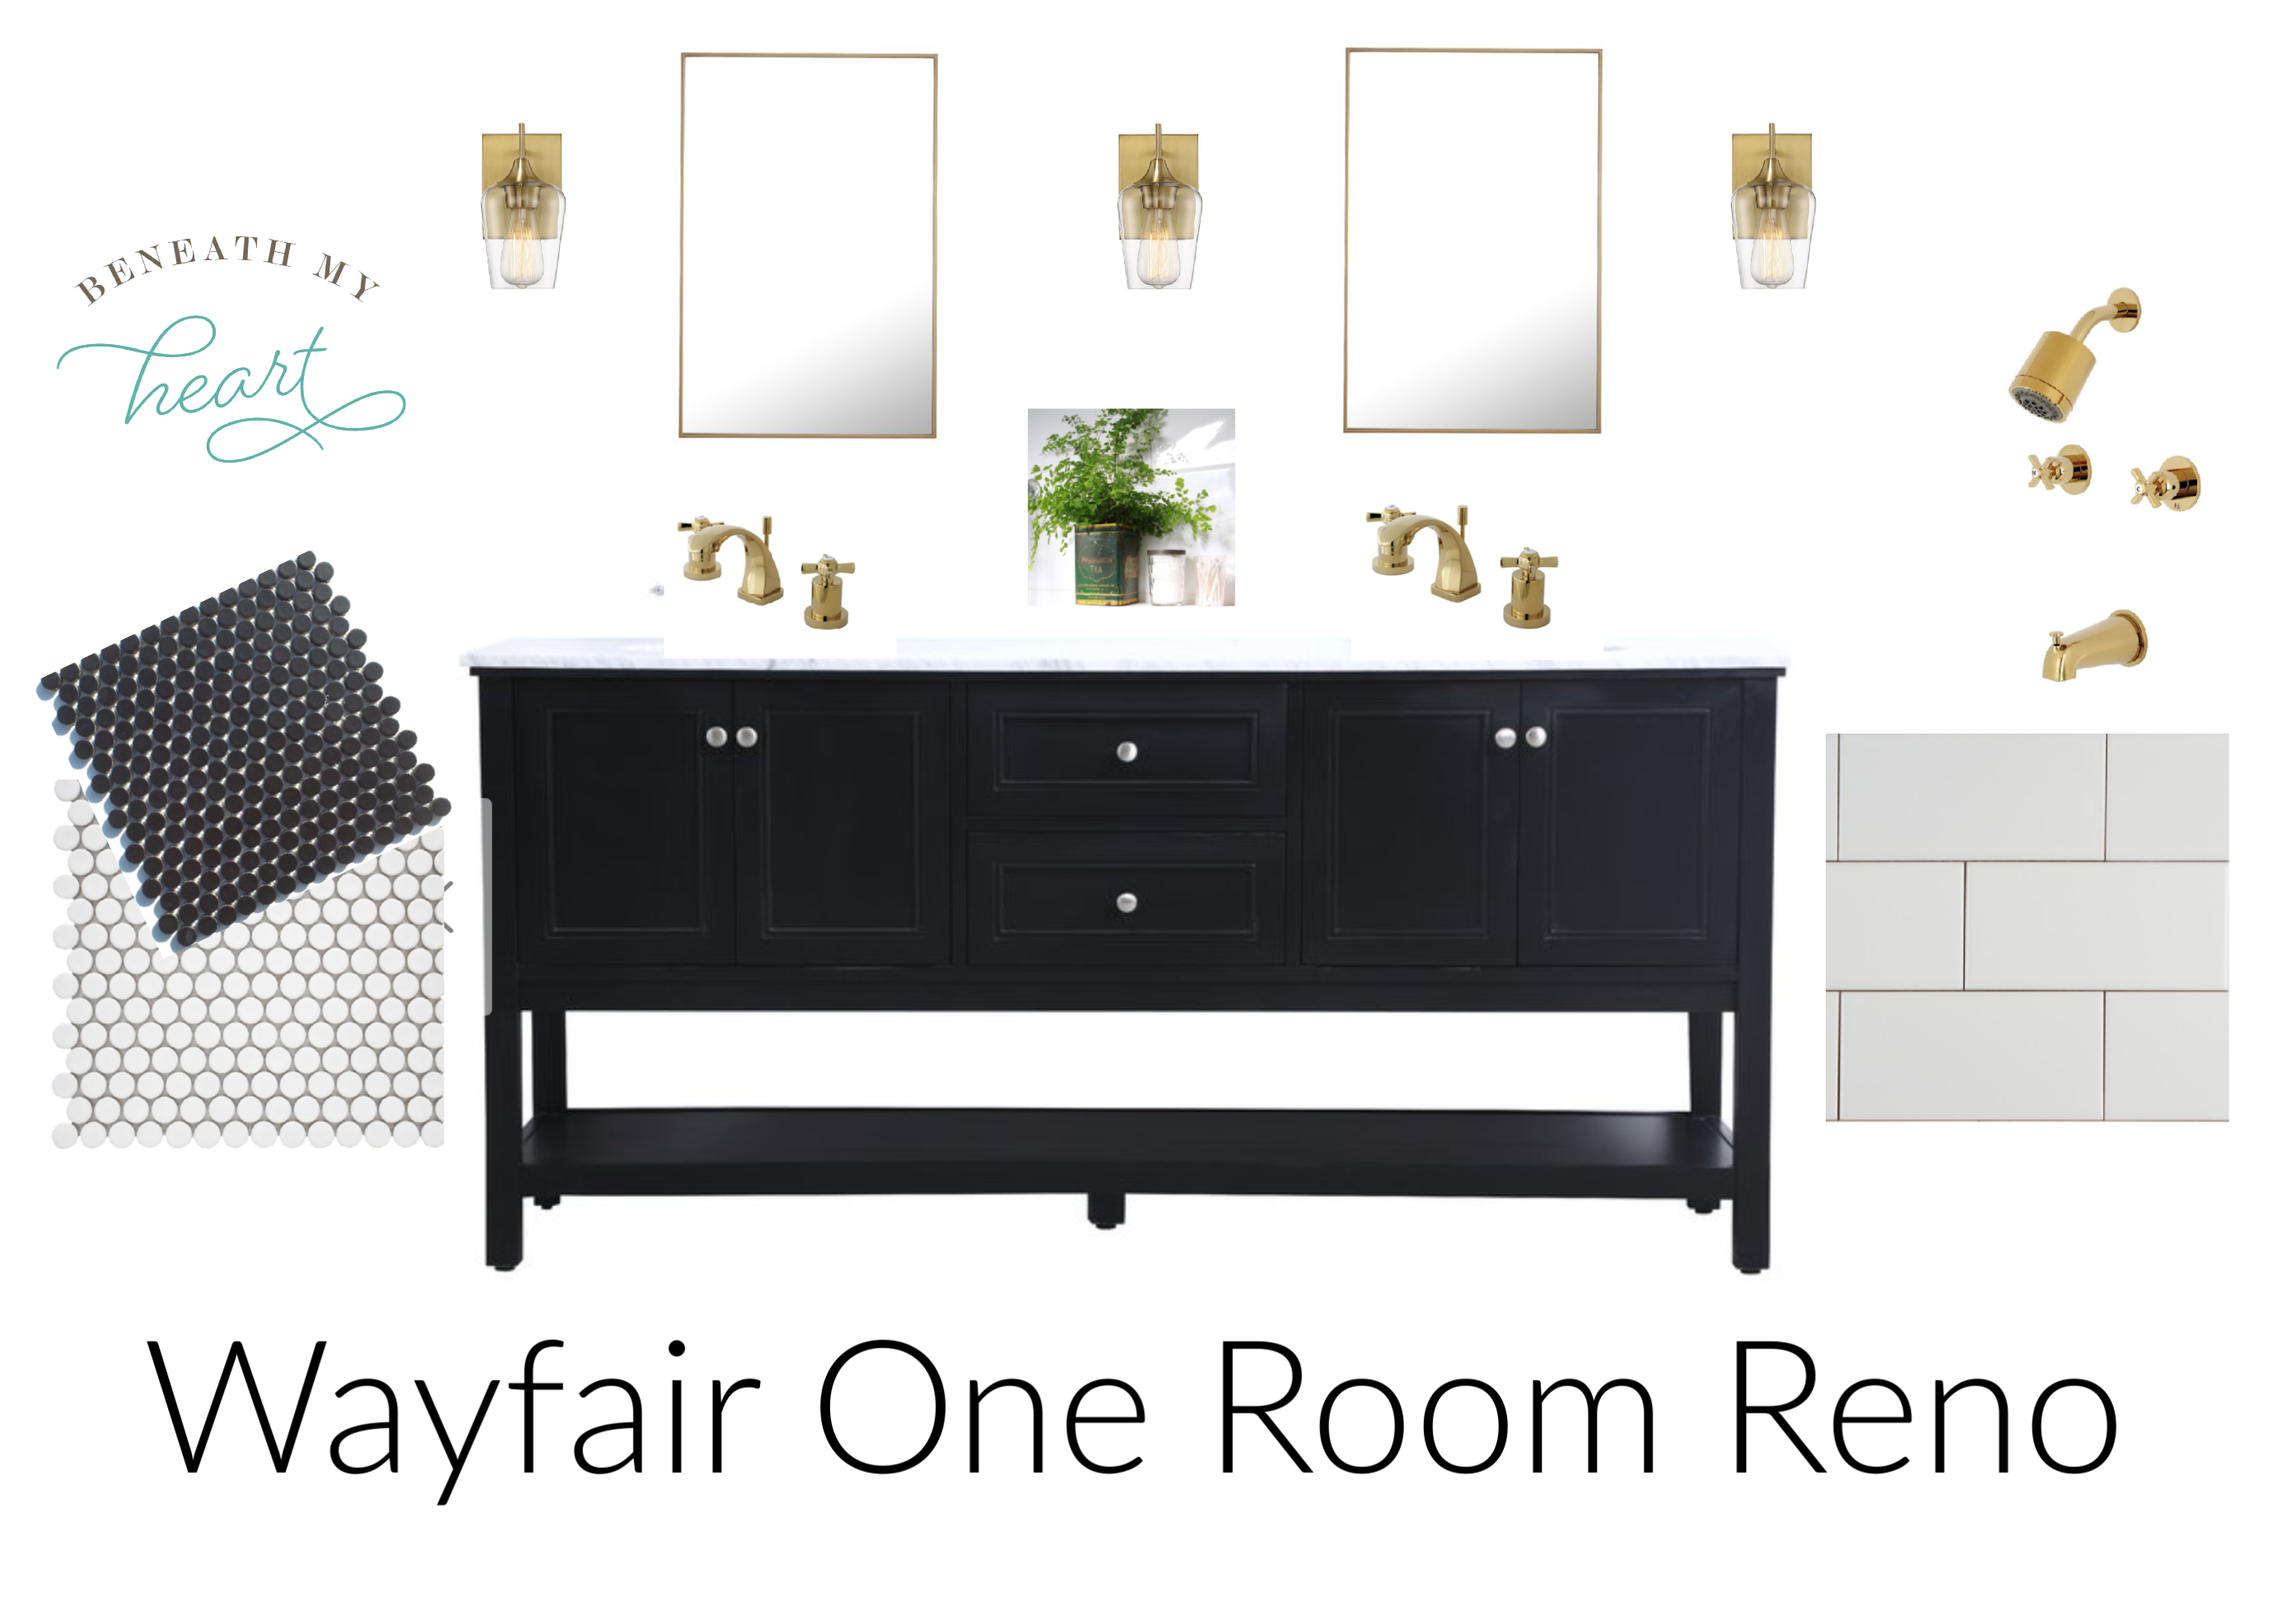 wayfair one room reno